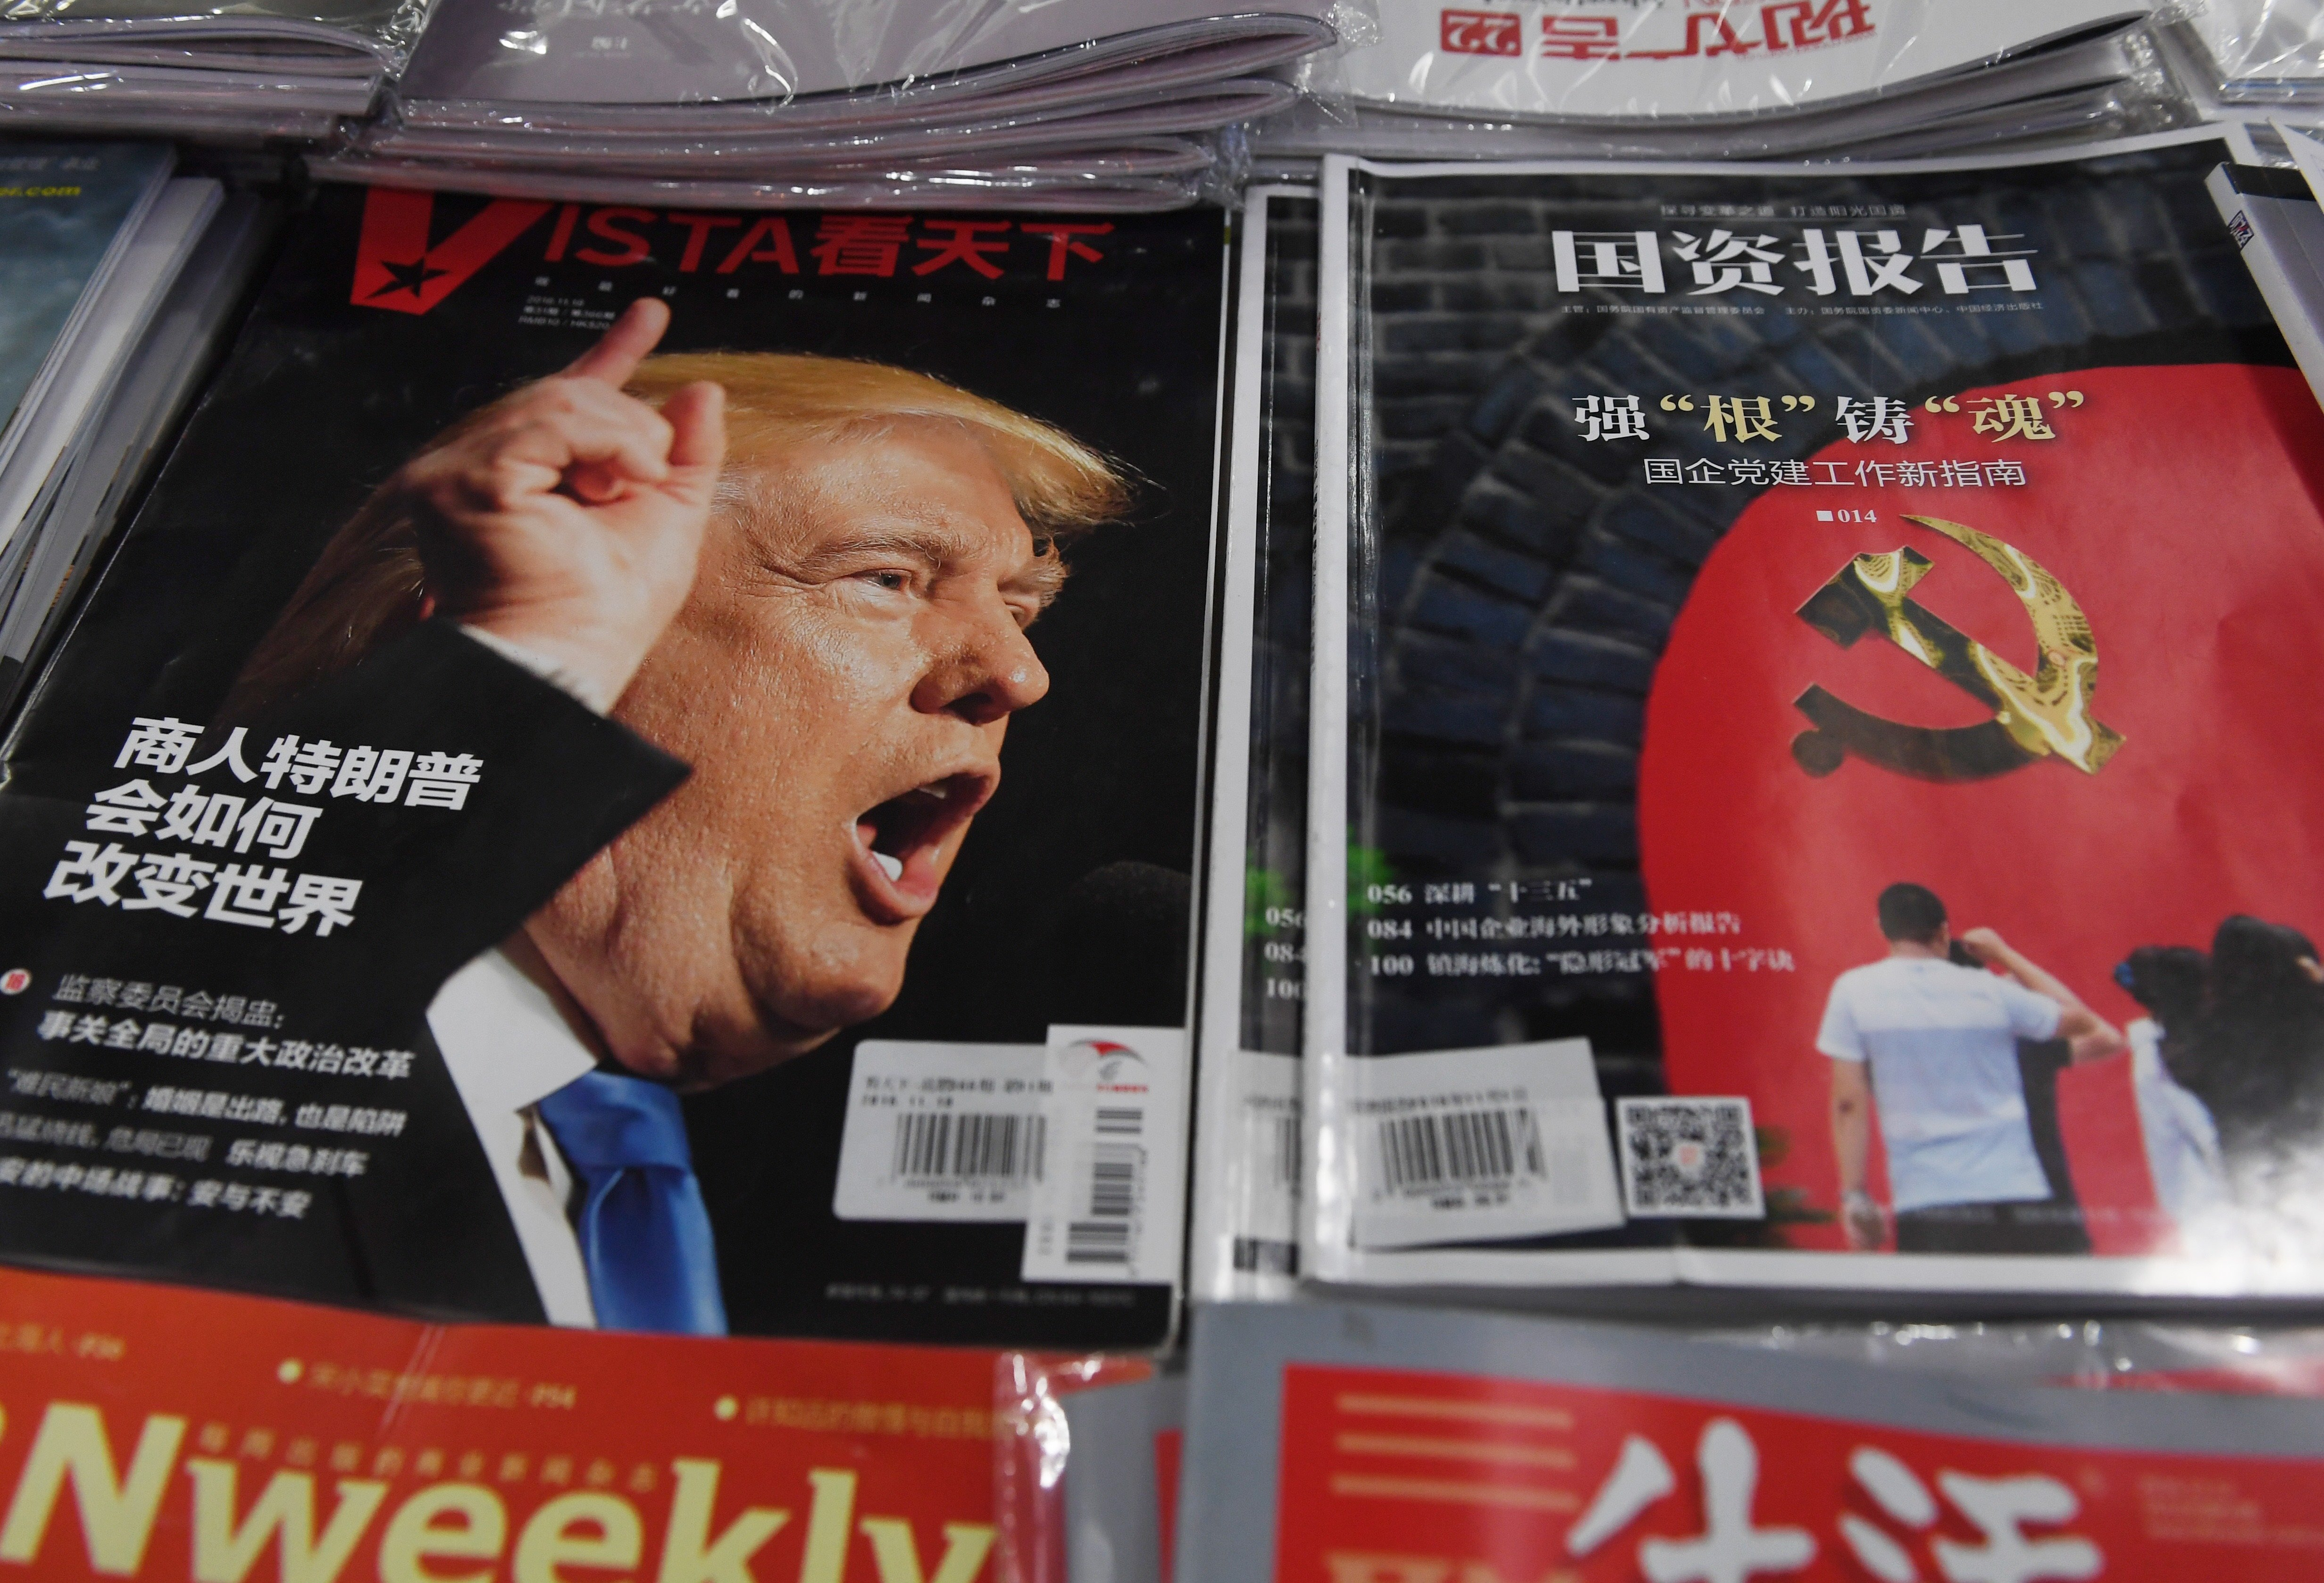 A magazine featuring US President-elect Donald Trump is seen at a bookstore in Beijing on December 12, 2016. The headline reads How will businessman Trump change the world